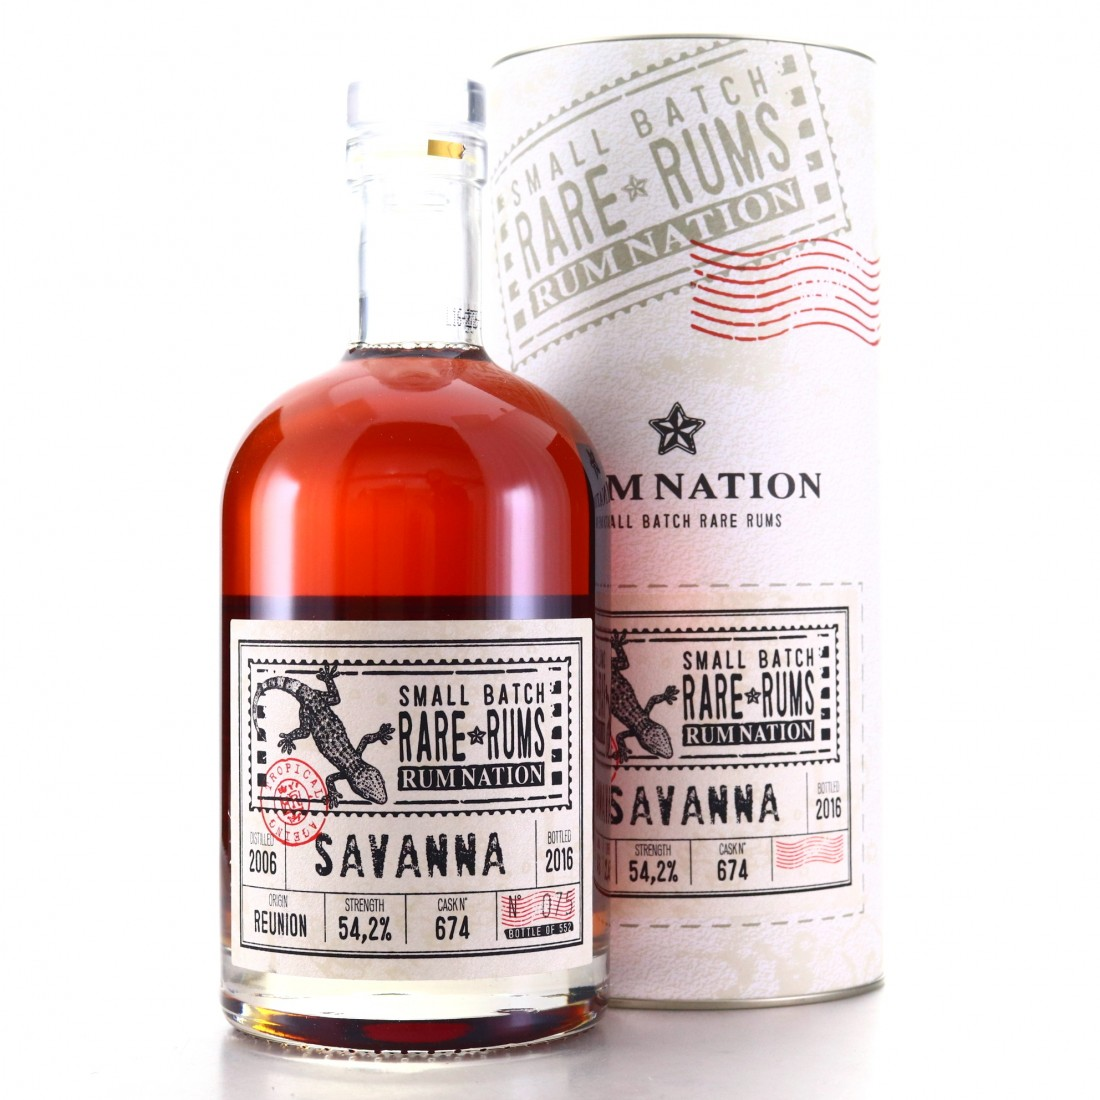 Savanna 2006 Rum Nation Small Batch